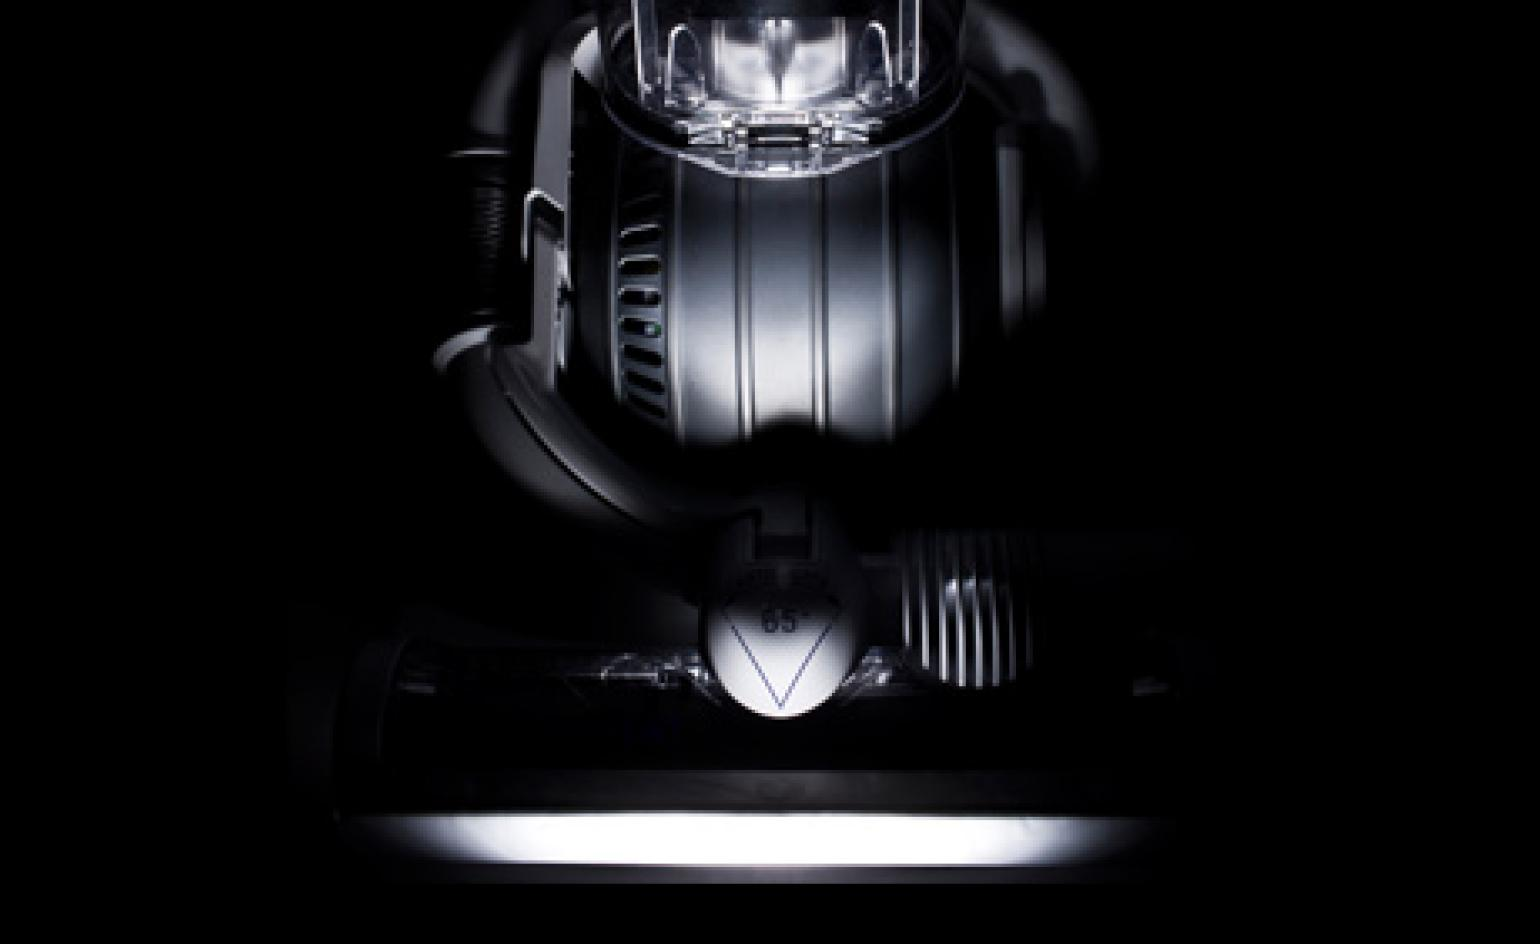 dyson s new limited